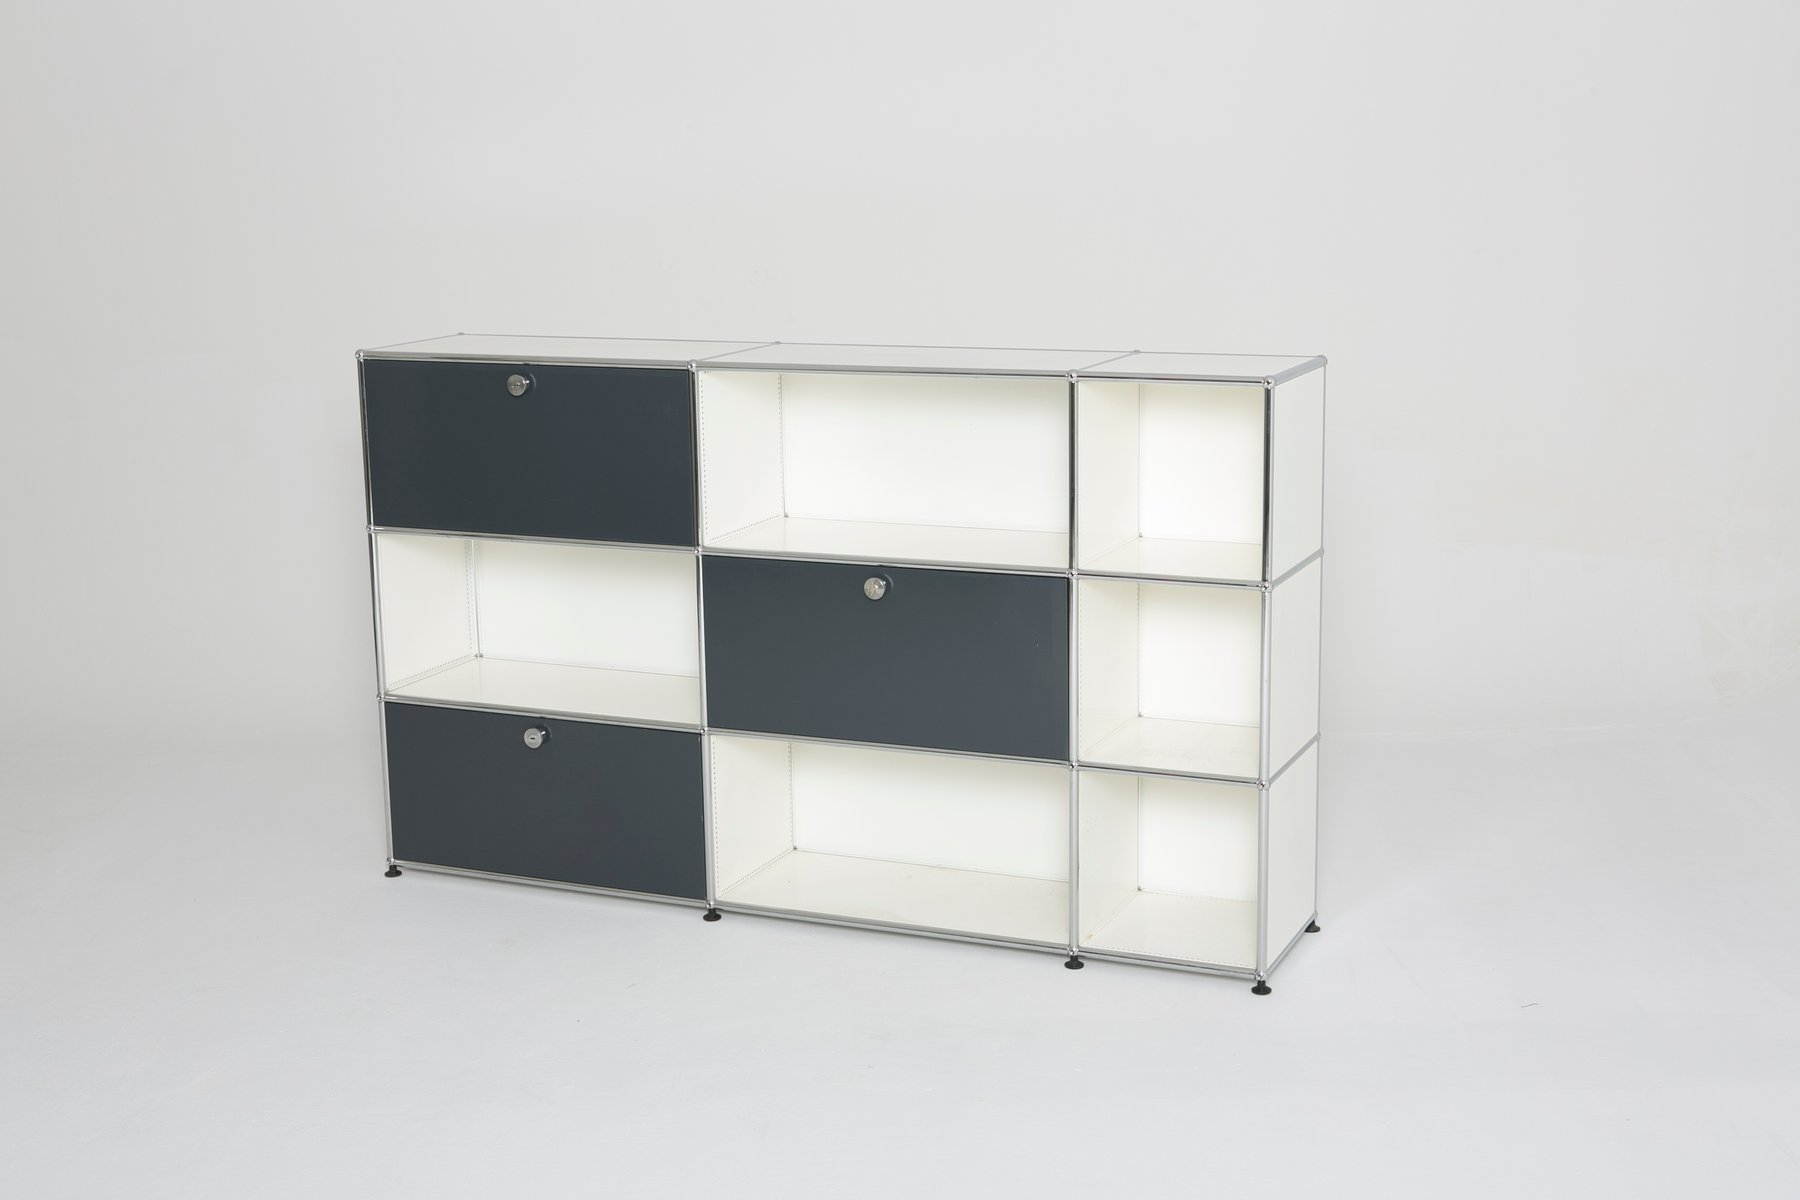 vintage schrank in wei und grau von usm haller bei pamono kaufen. Black Bedroom Furniture Sets. Home Design Ideas